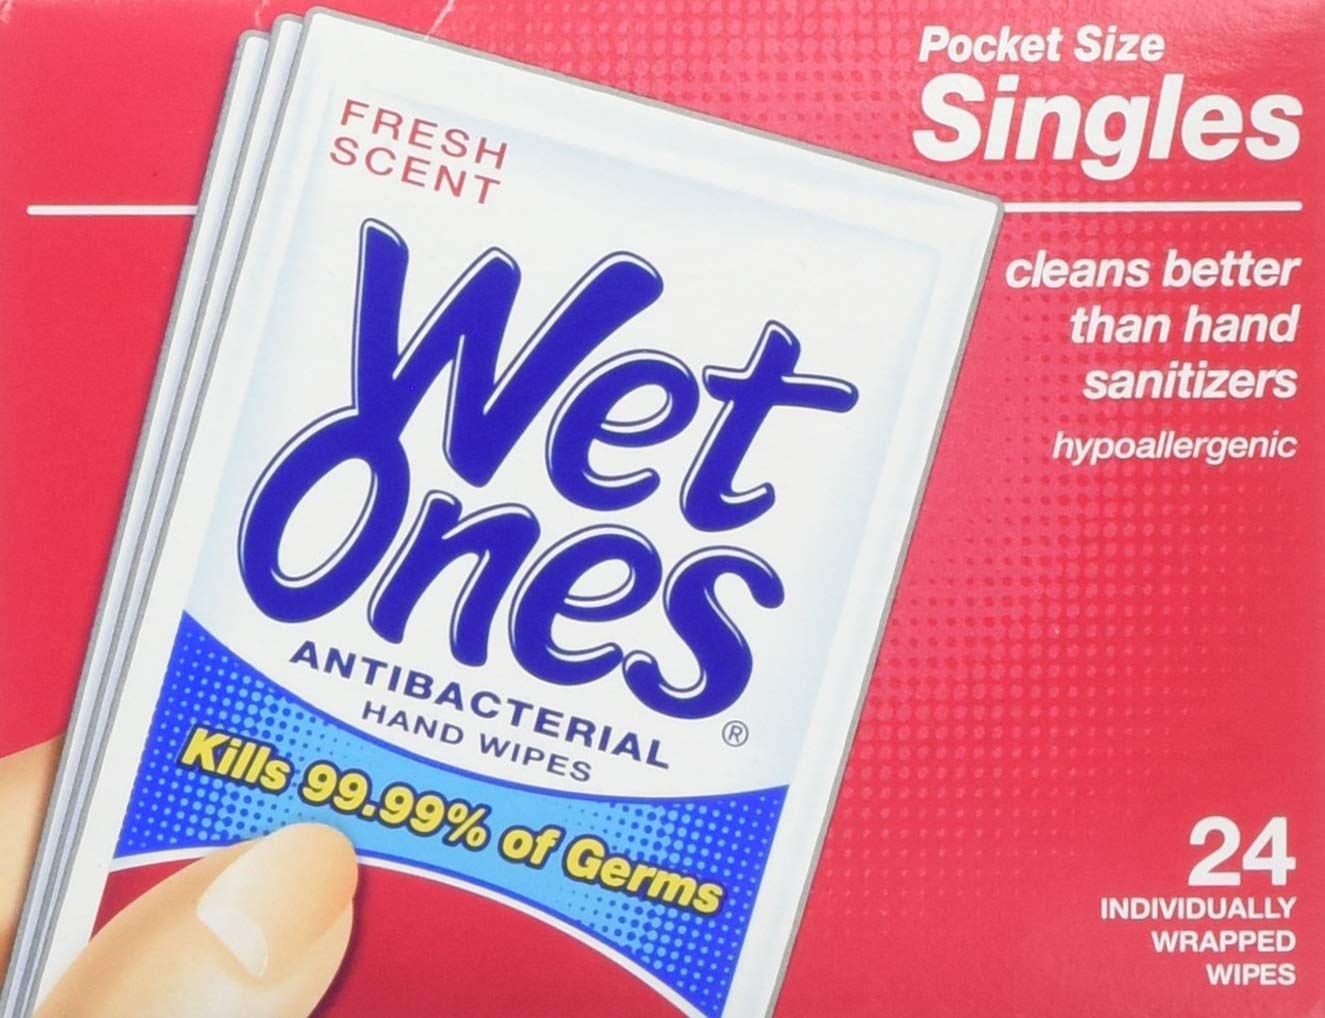 Wet ones hand and face wipes